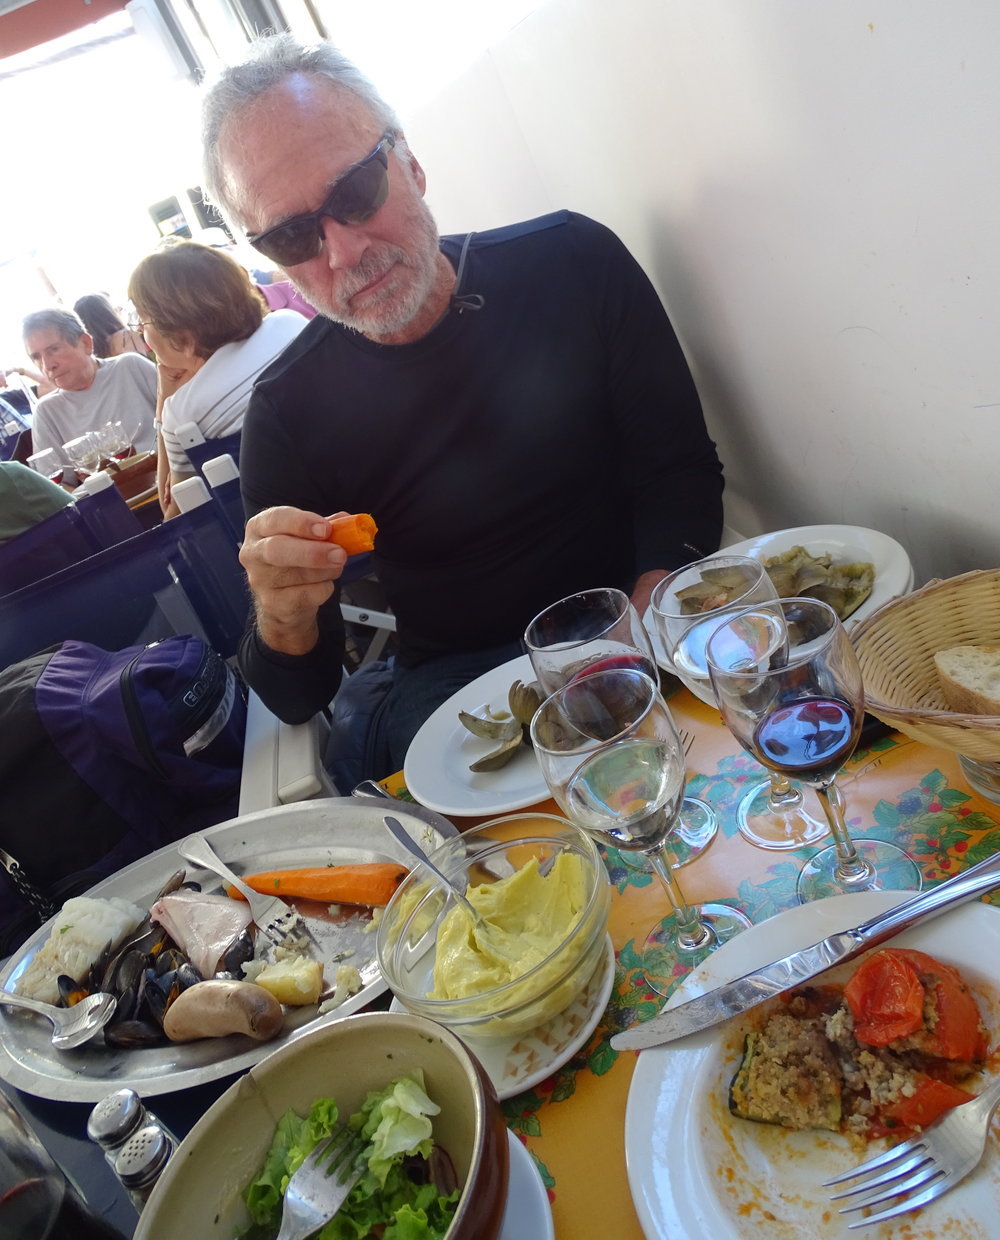 Gorging myself with delectables in St. Tropez